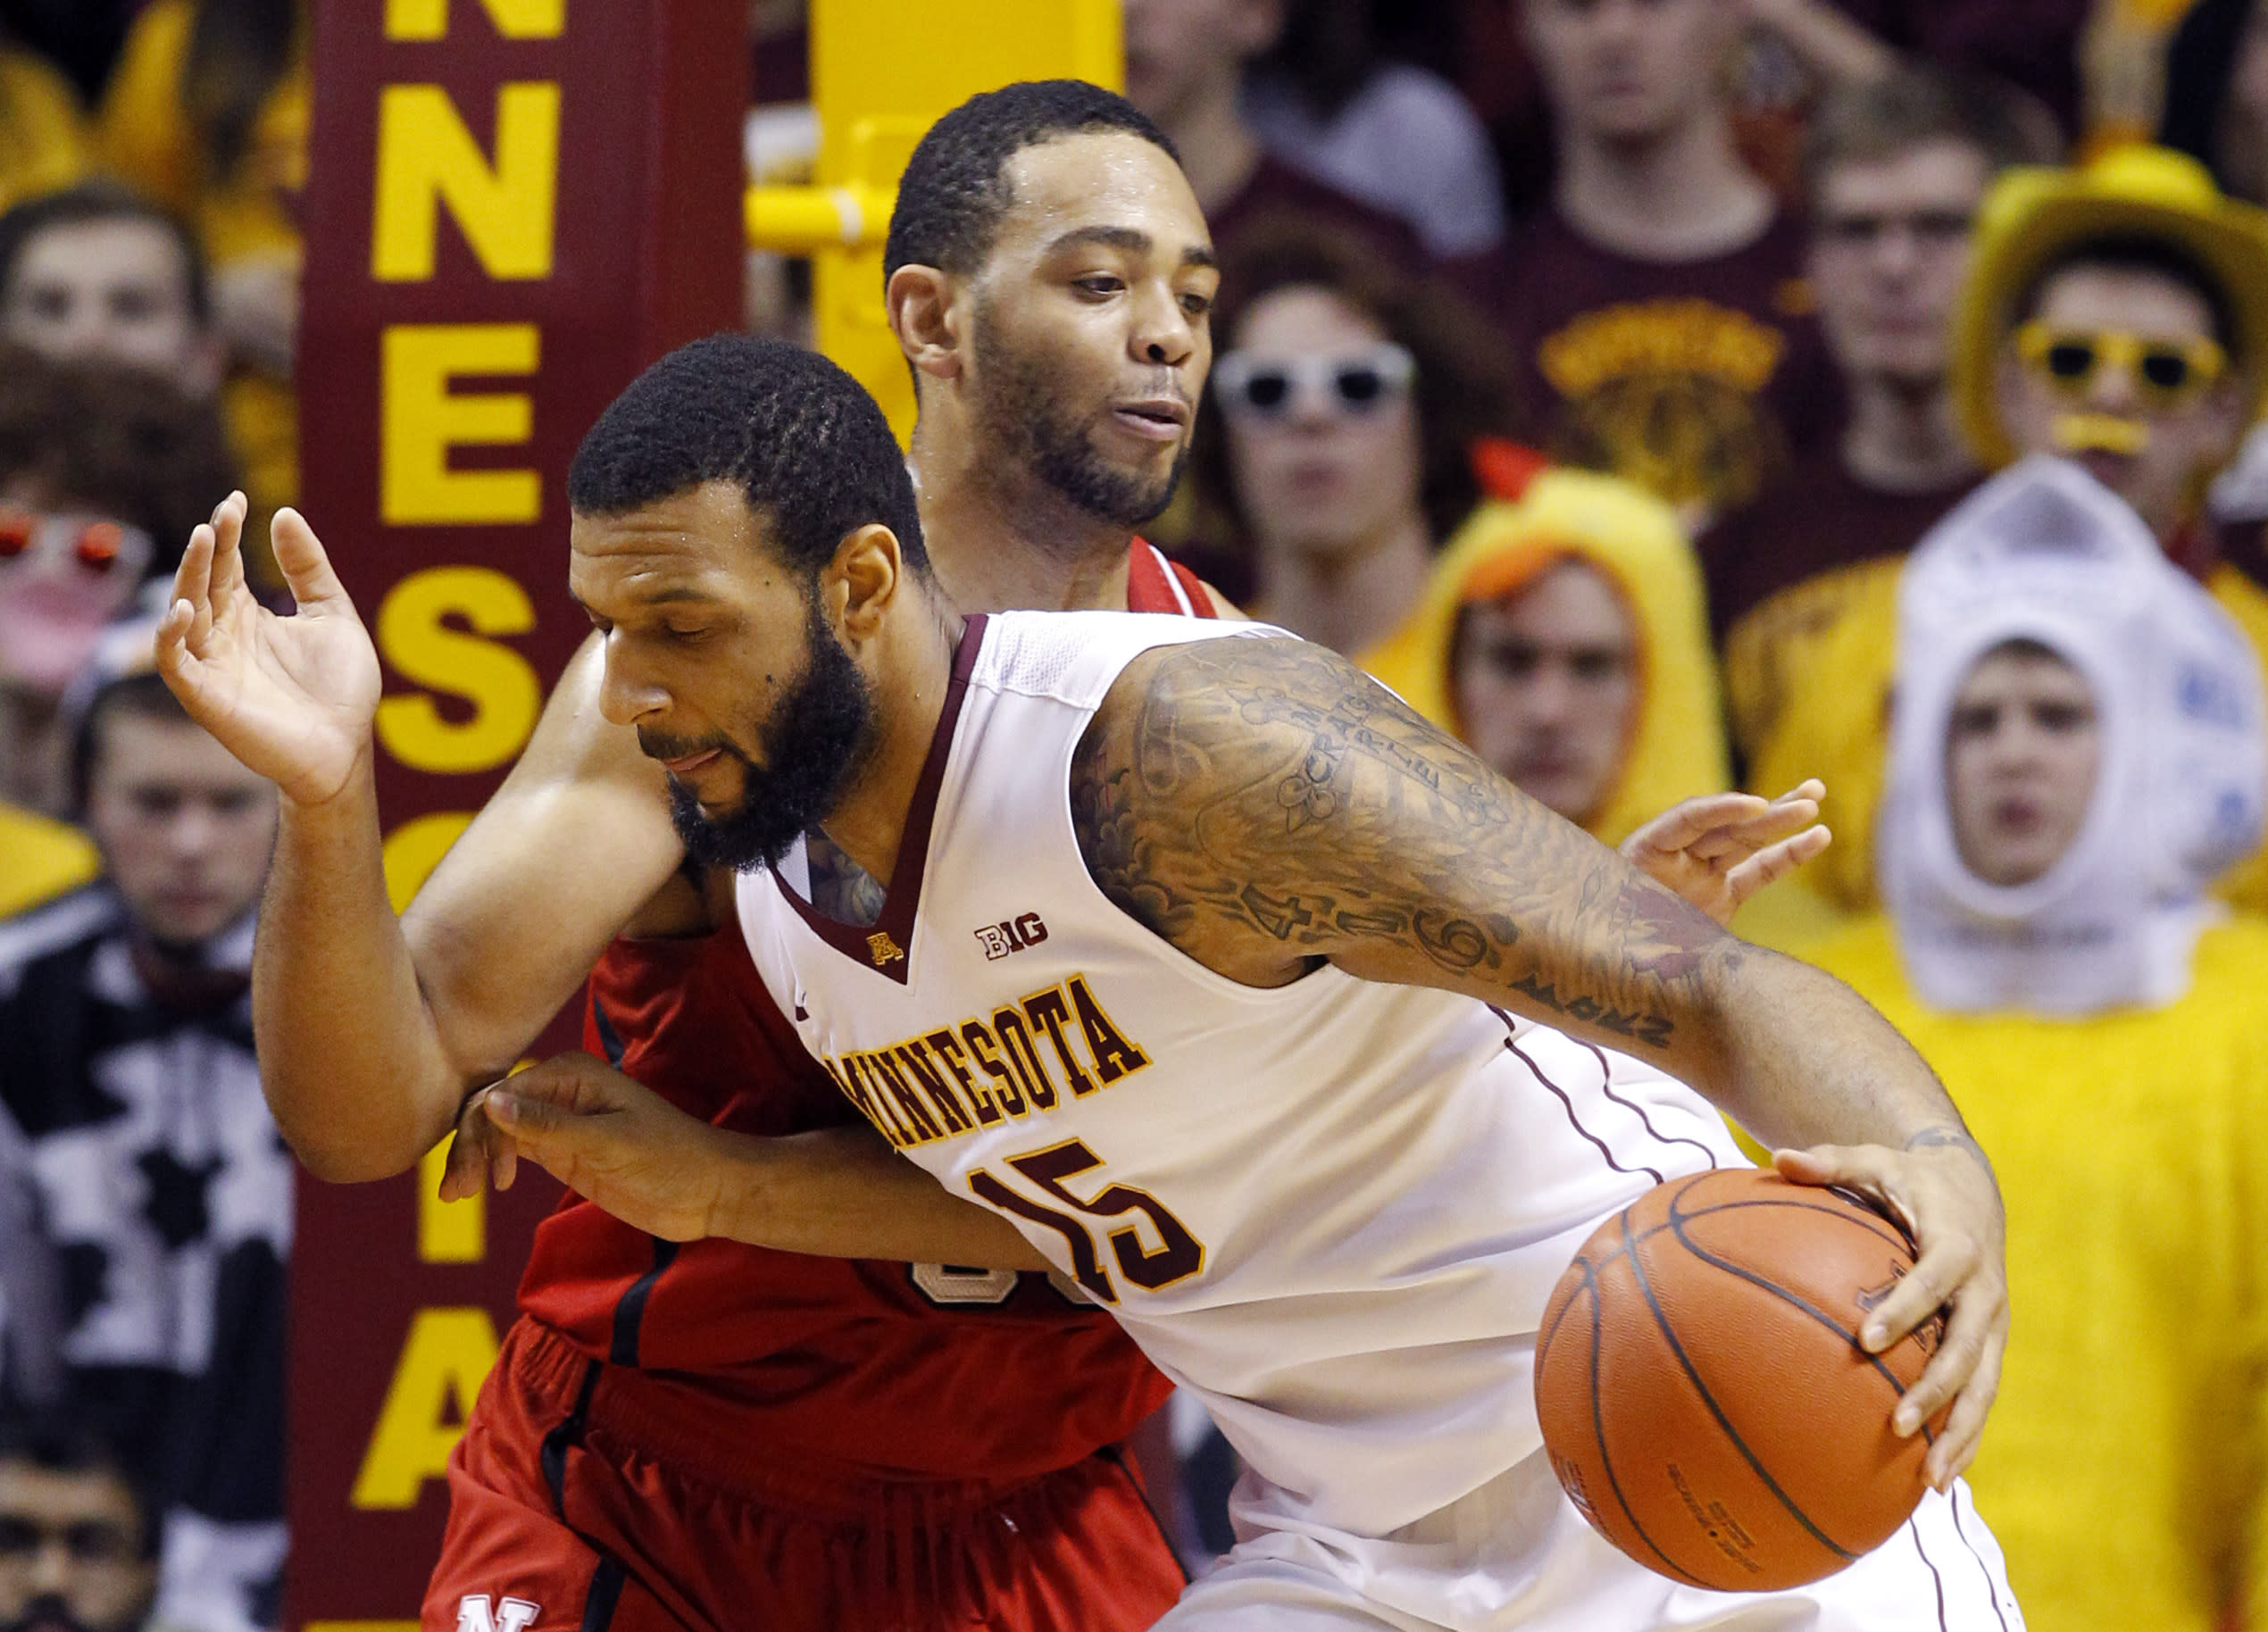 Walker leads Minnesota's romp past Nebraska, 60-42